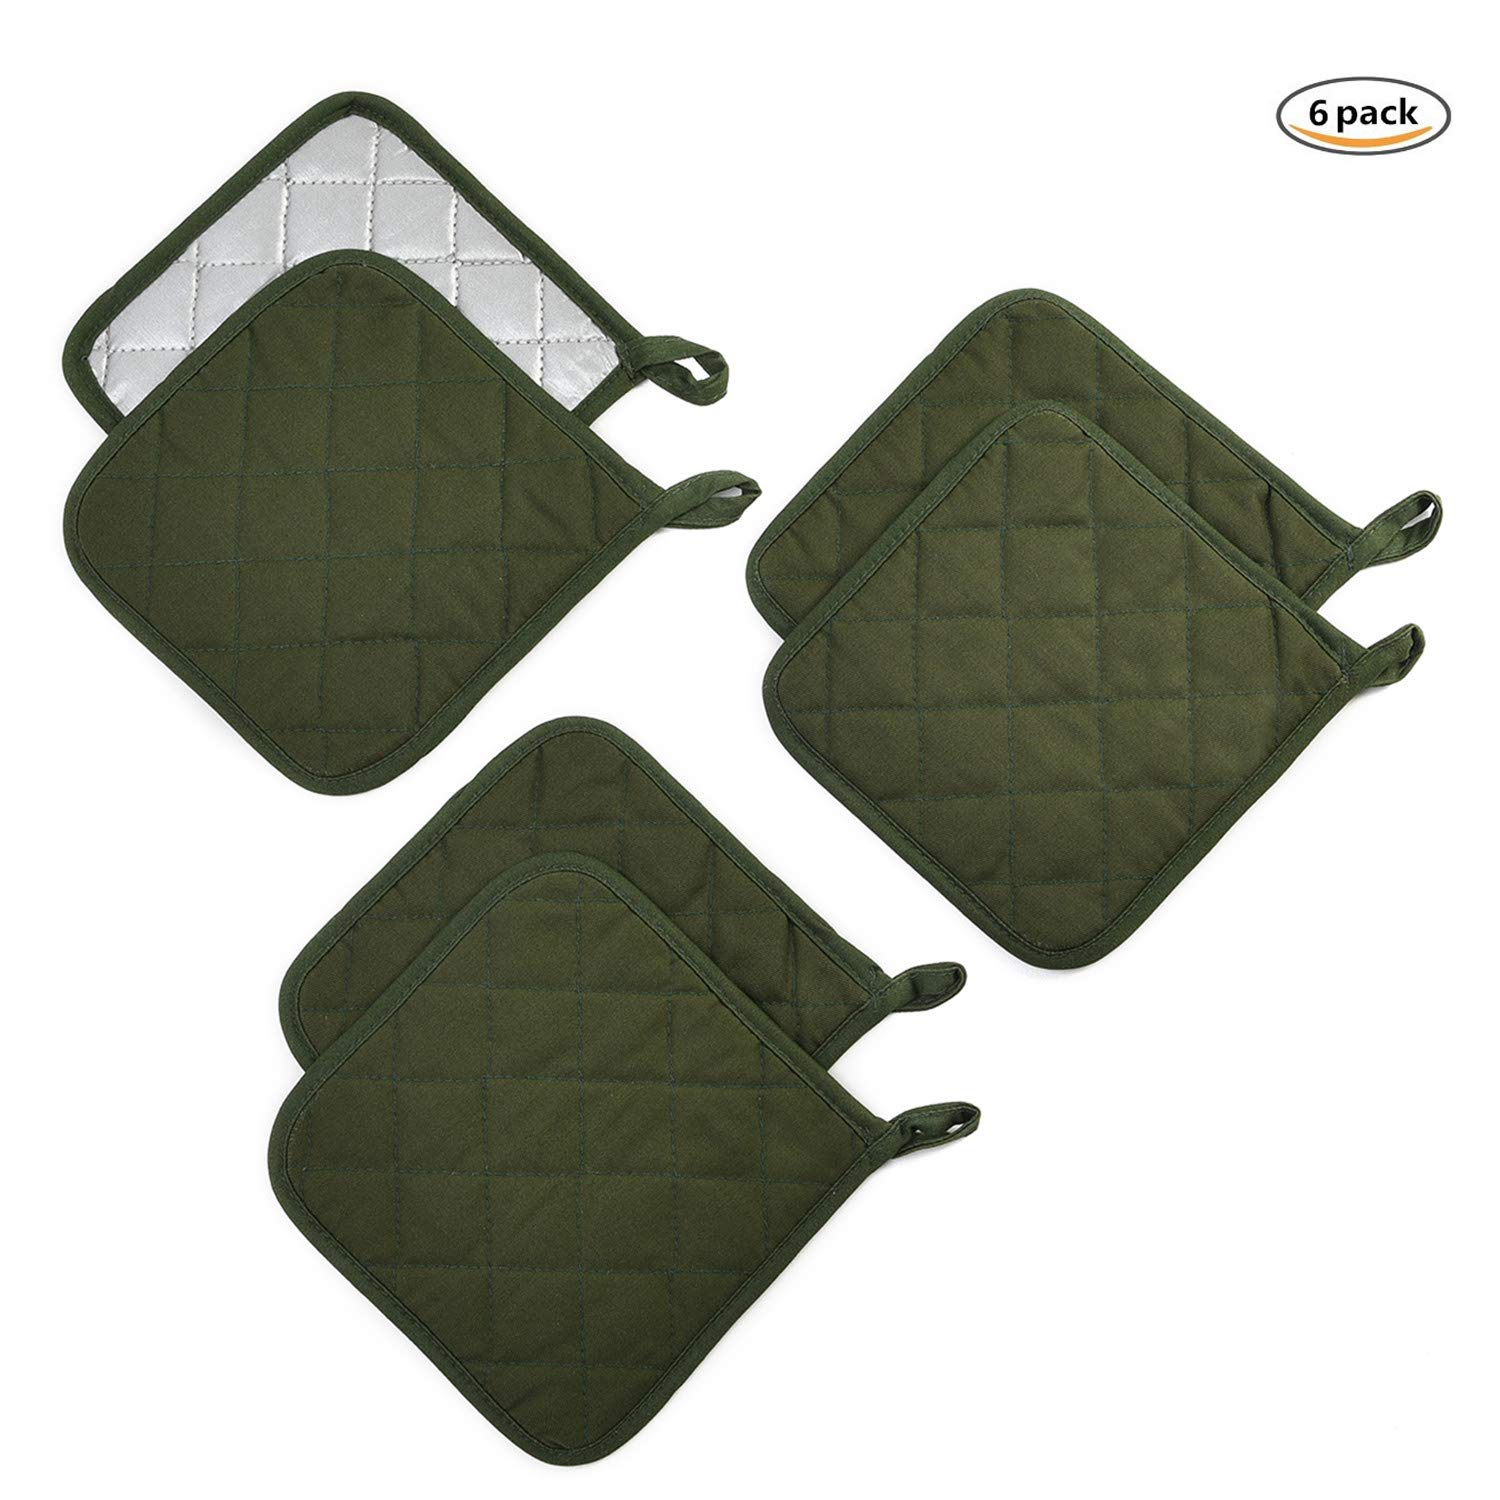 Jennice House Potholders Set Trivets Kitchen Heat Resistant Pure Cotton Coasters Hot Pads Pot Holders Set of 6 for Everyday Cooking And Baking by 7 x 7 Inch (Army Green)